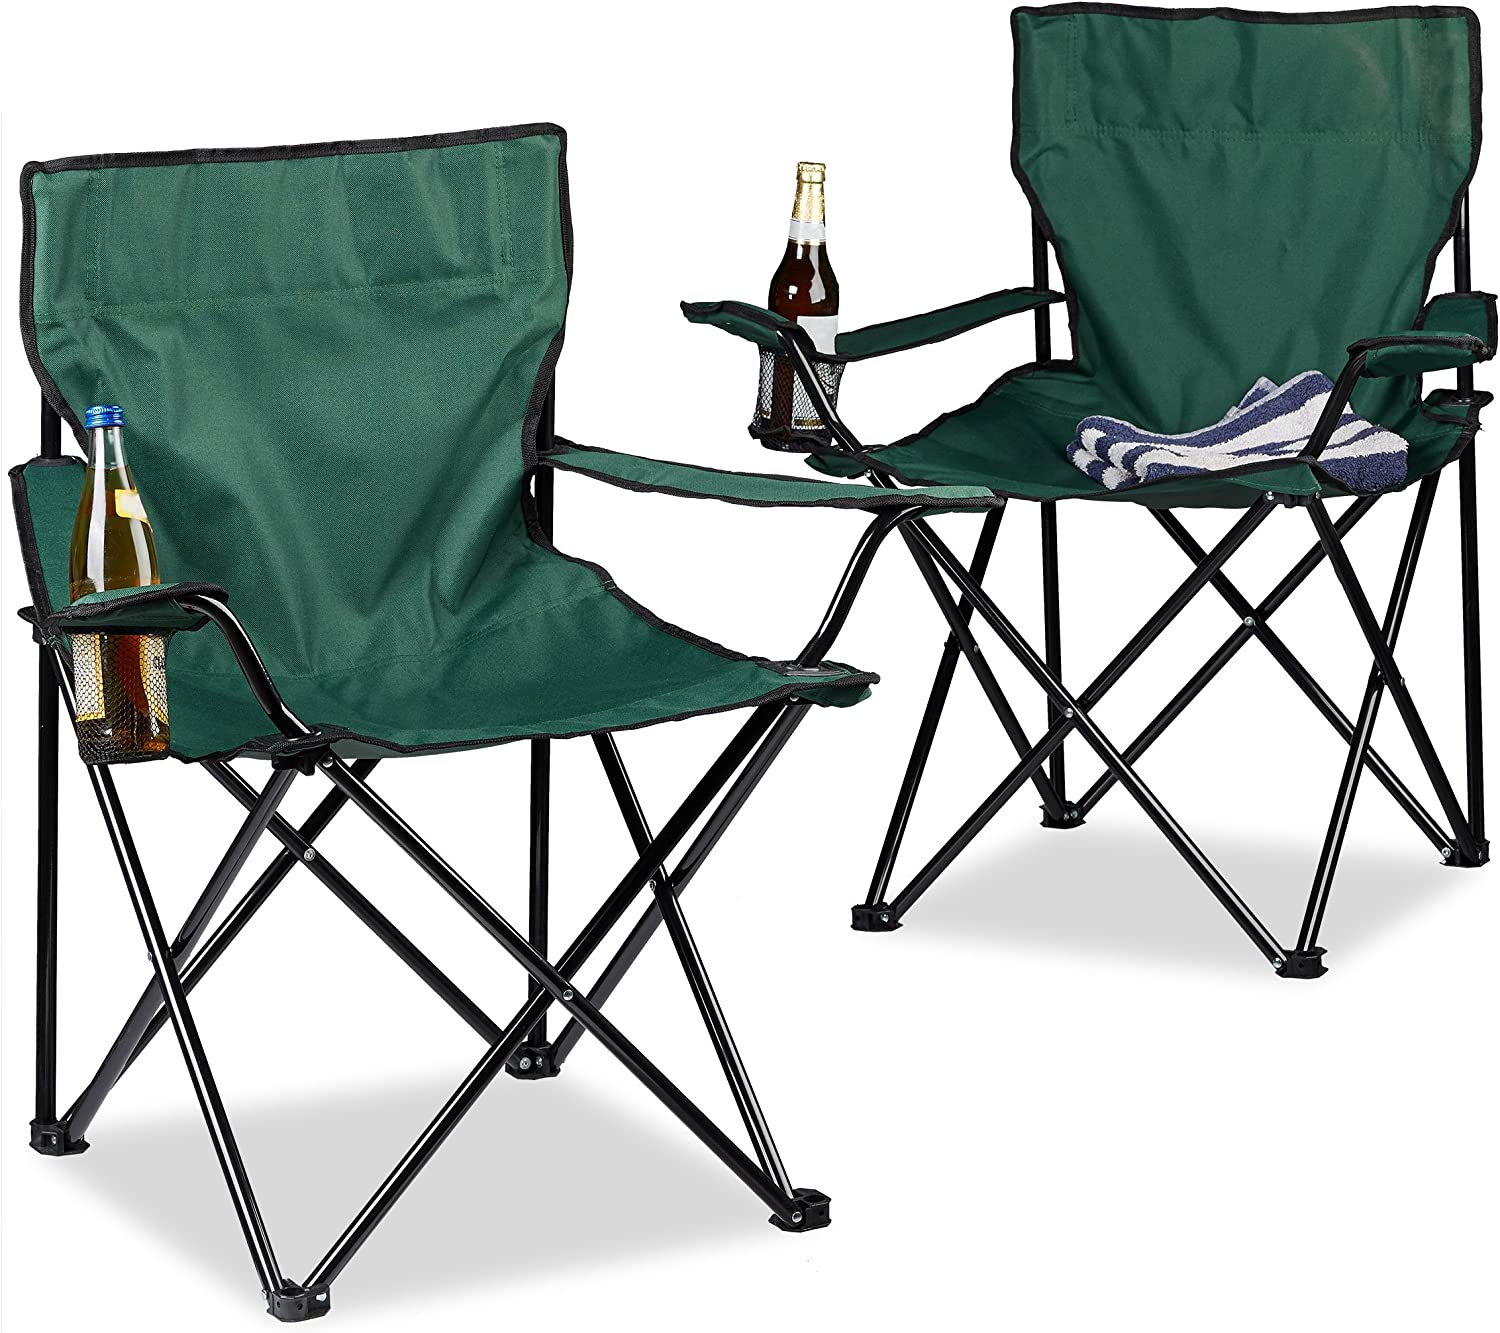 Foldable Relaxdays Camping Chair HxWxD: 81 x 78 x 50 cm Cup Holder Arm Rests Travel Bag Various Colours